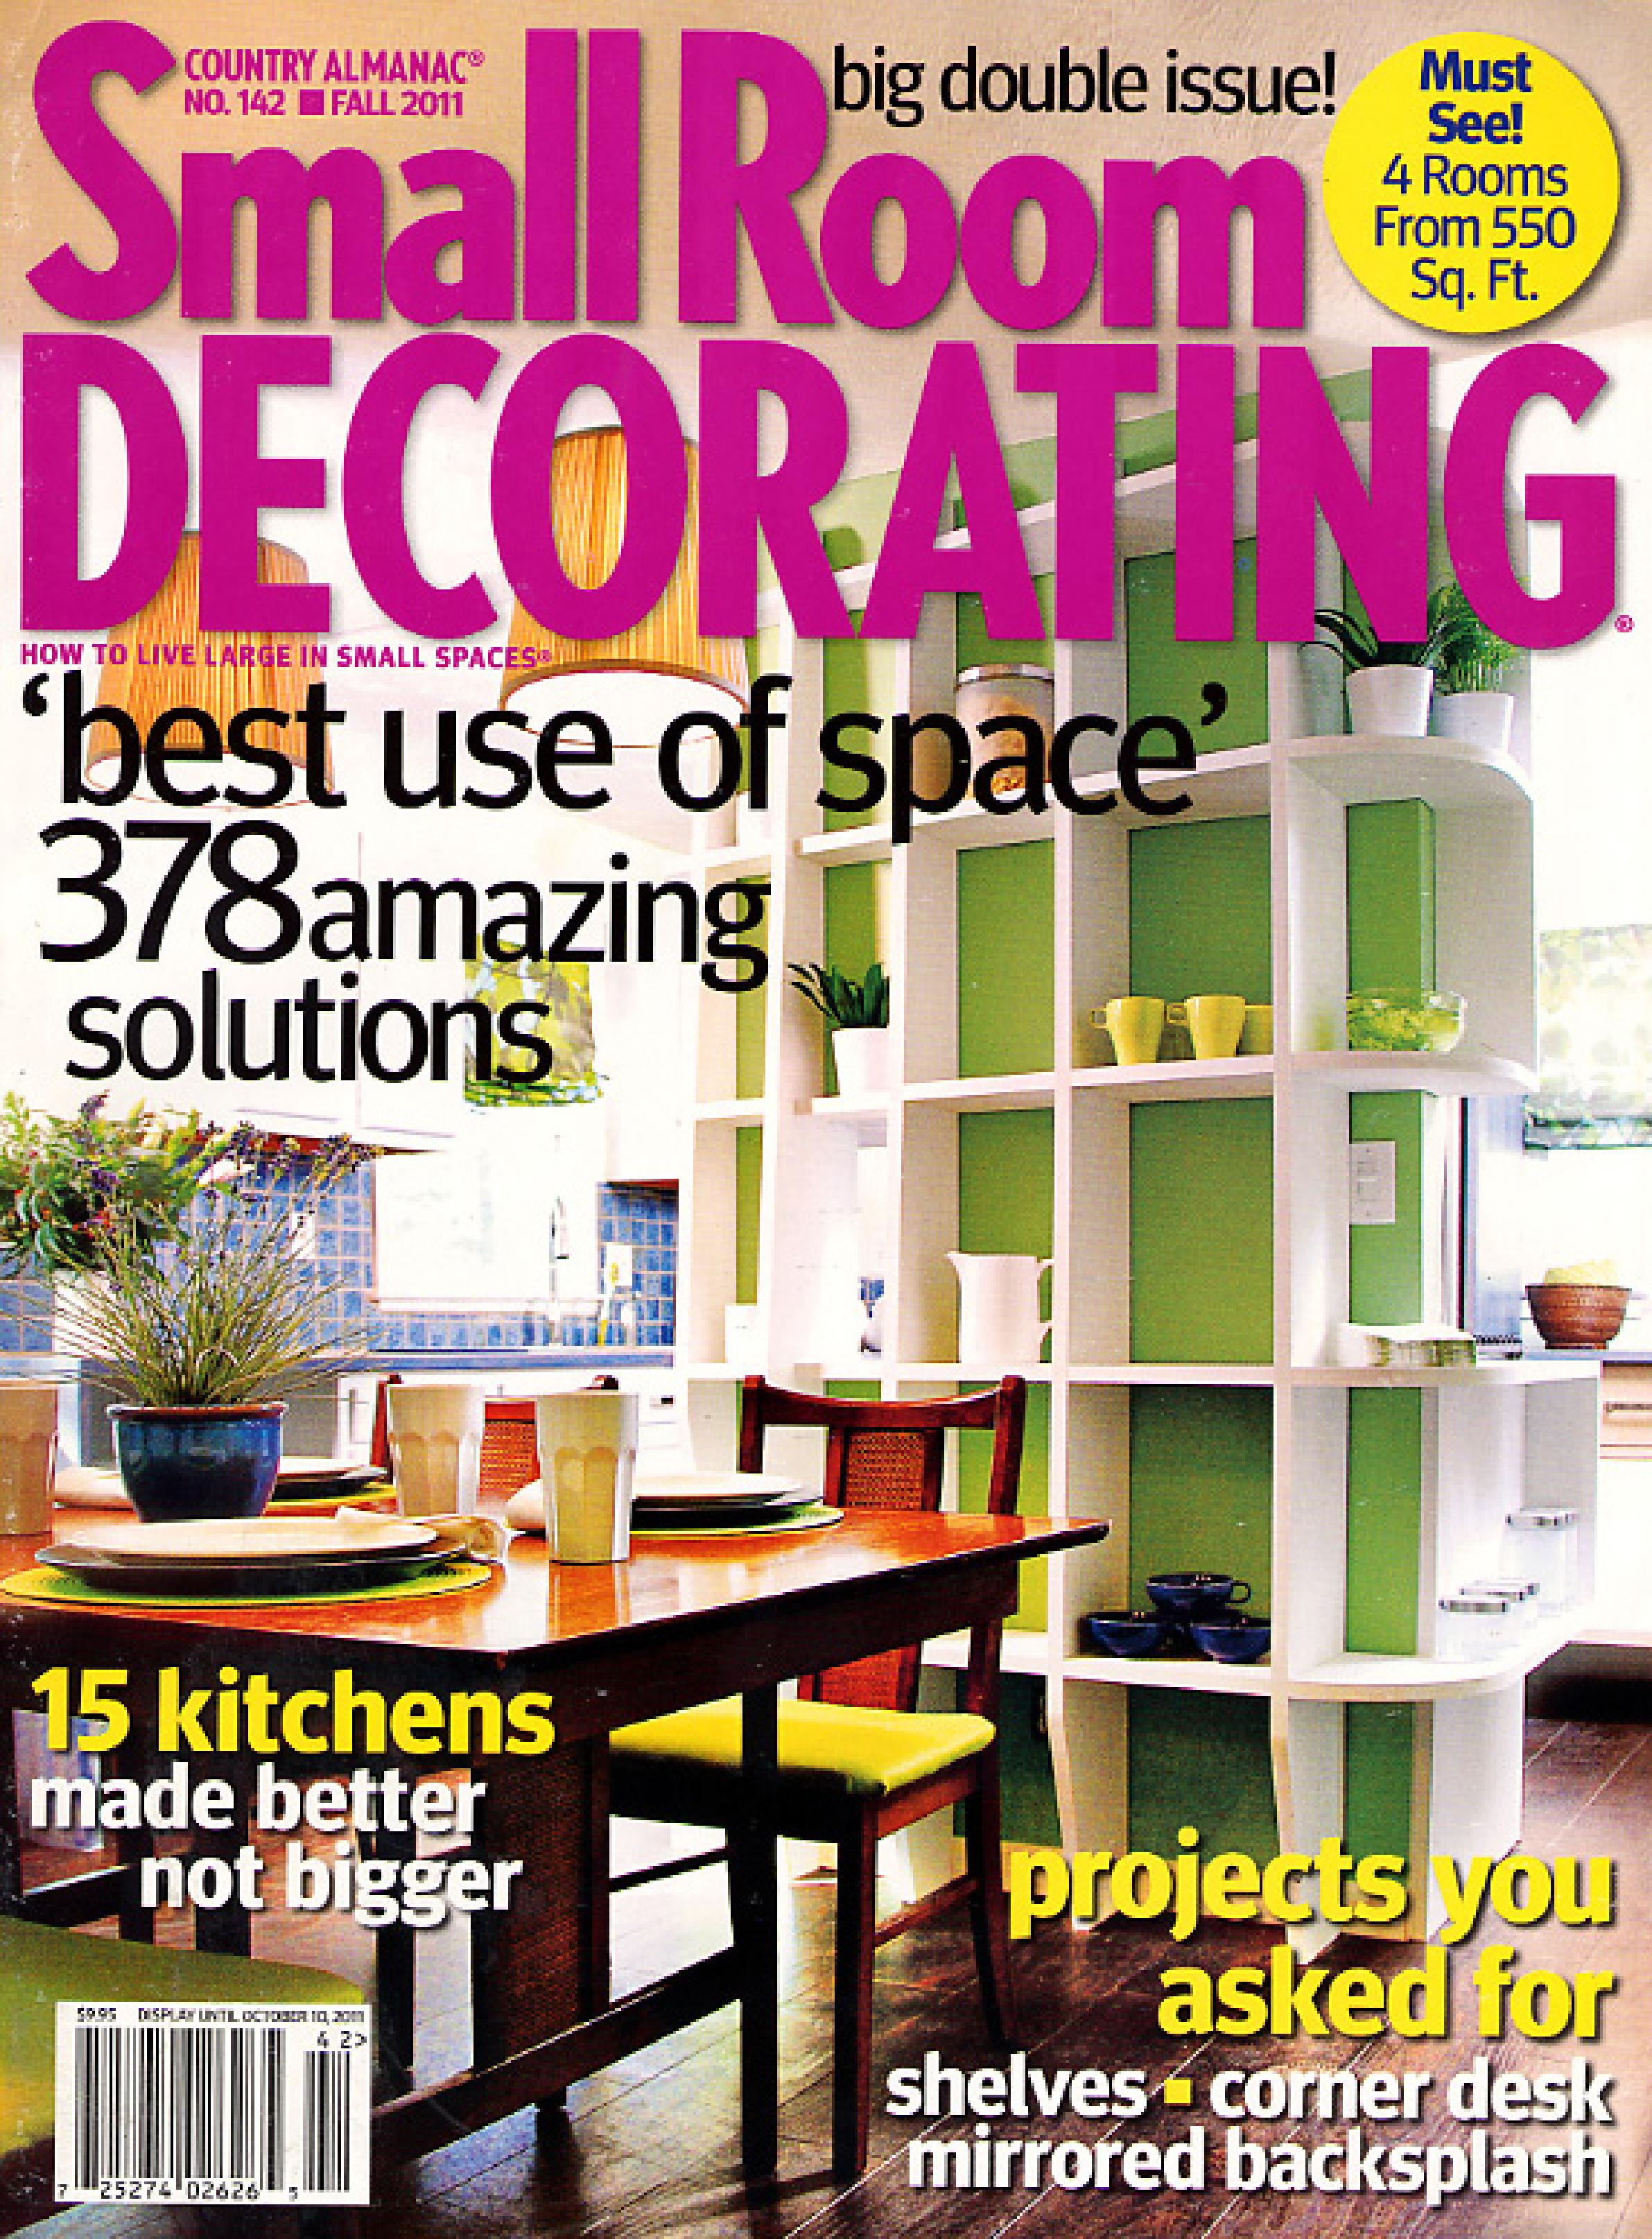 10-press_small_room_decorating_-_storage_minded-page-001